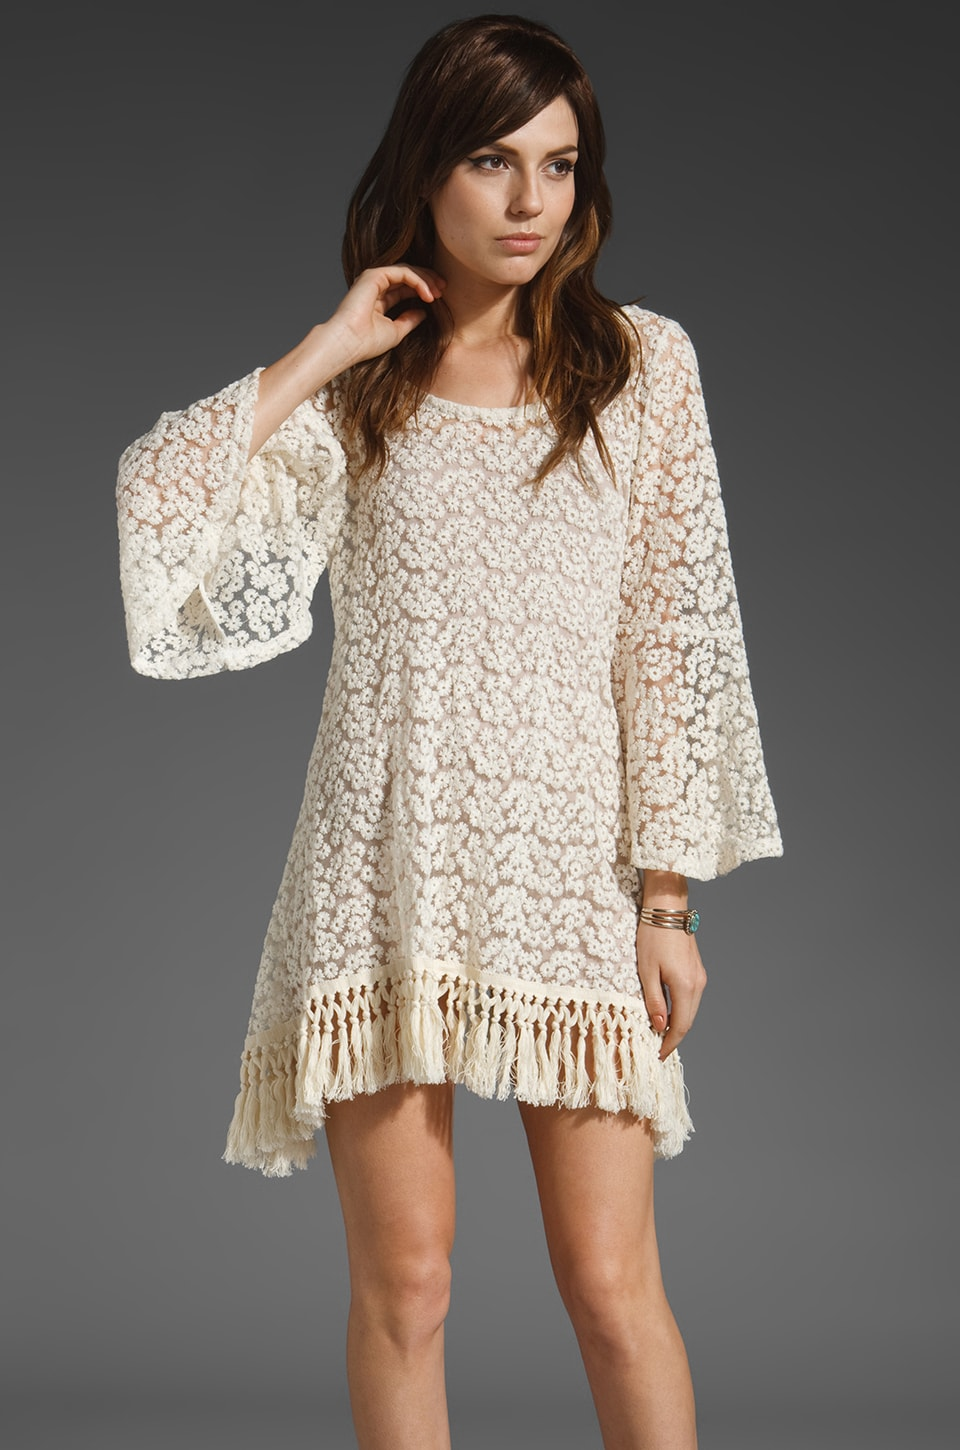 Gypsy Junkies Mimi Daisy Tunic in Cream